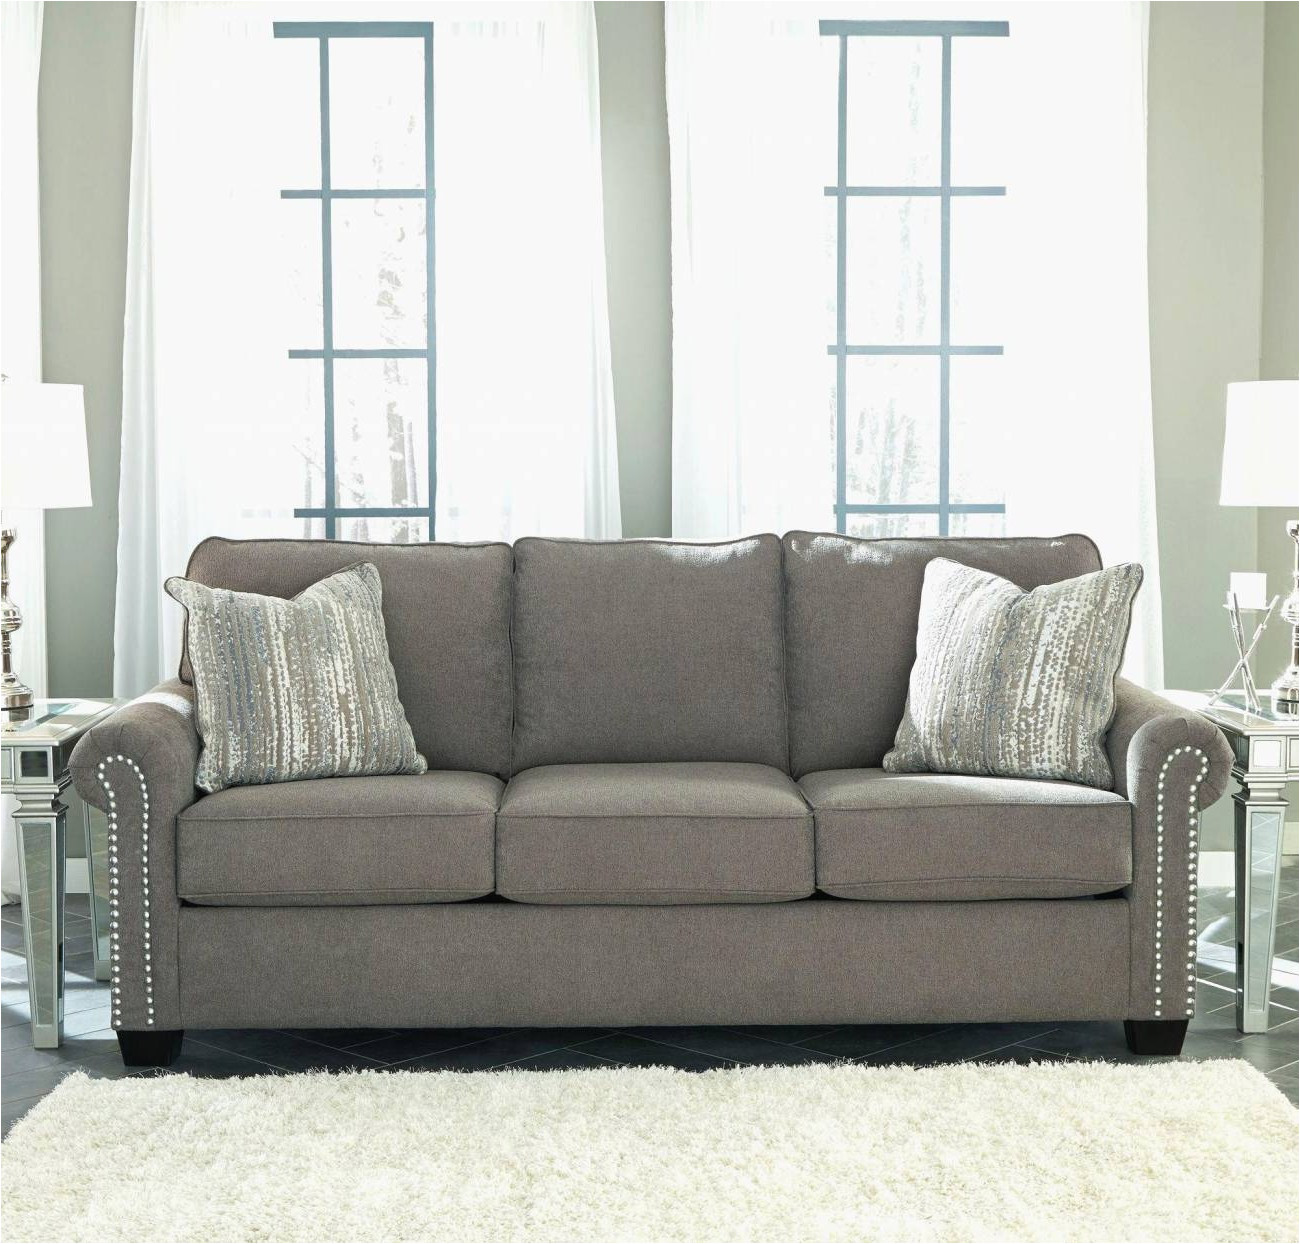 emerald home boylston double fabric chaise unusual 31 inspiration for bainbridge double fabric chaise